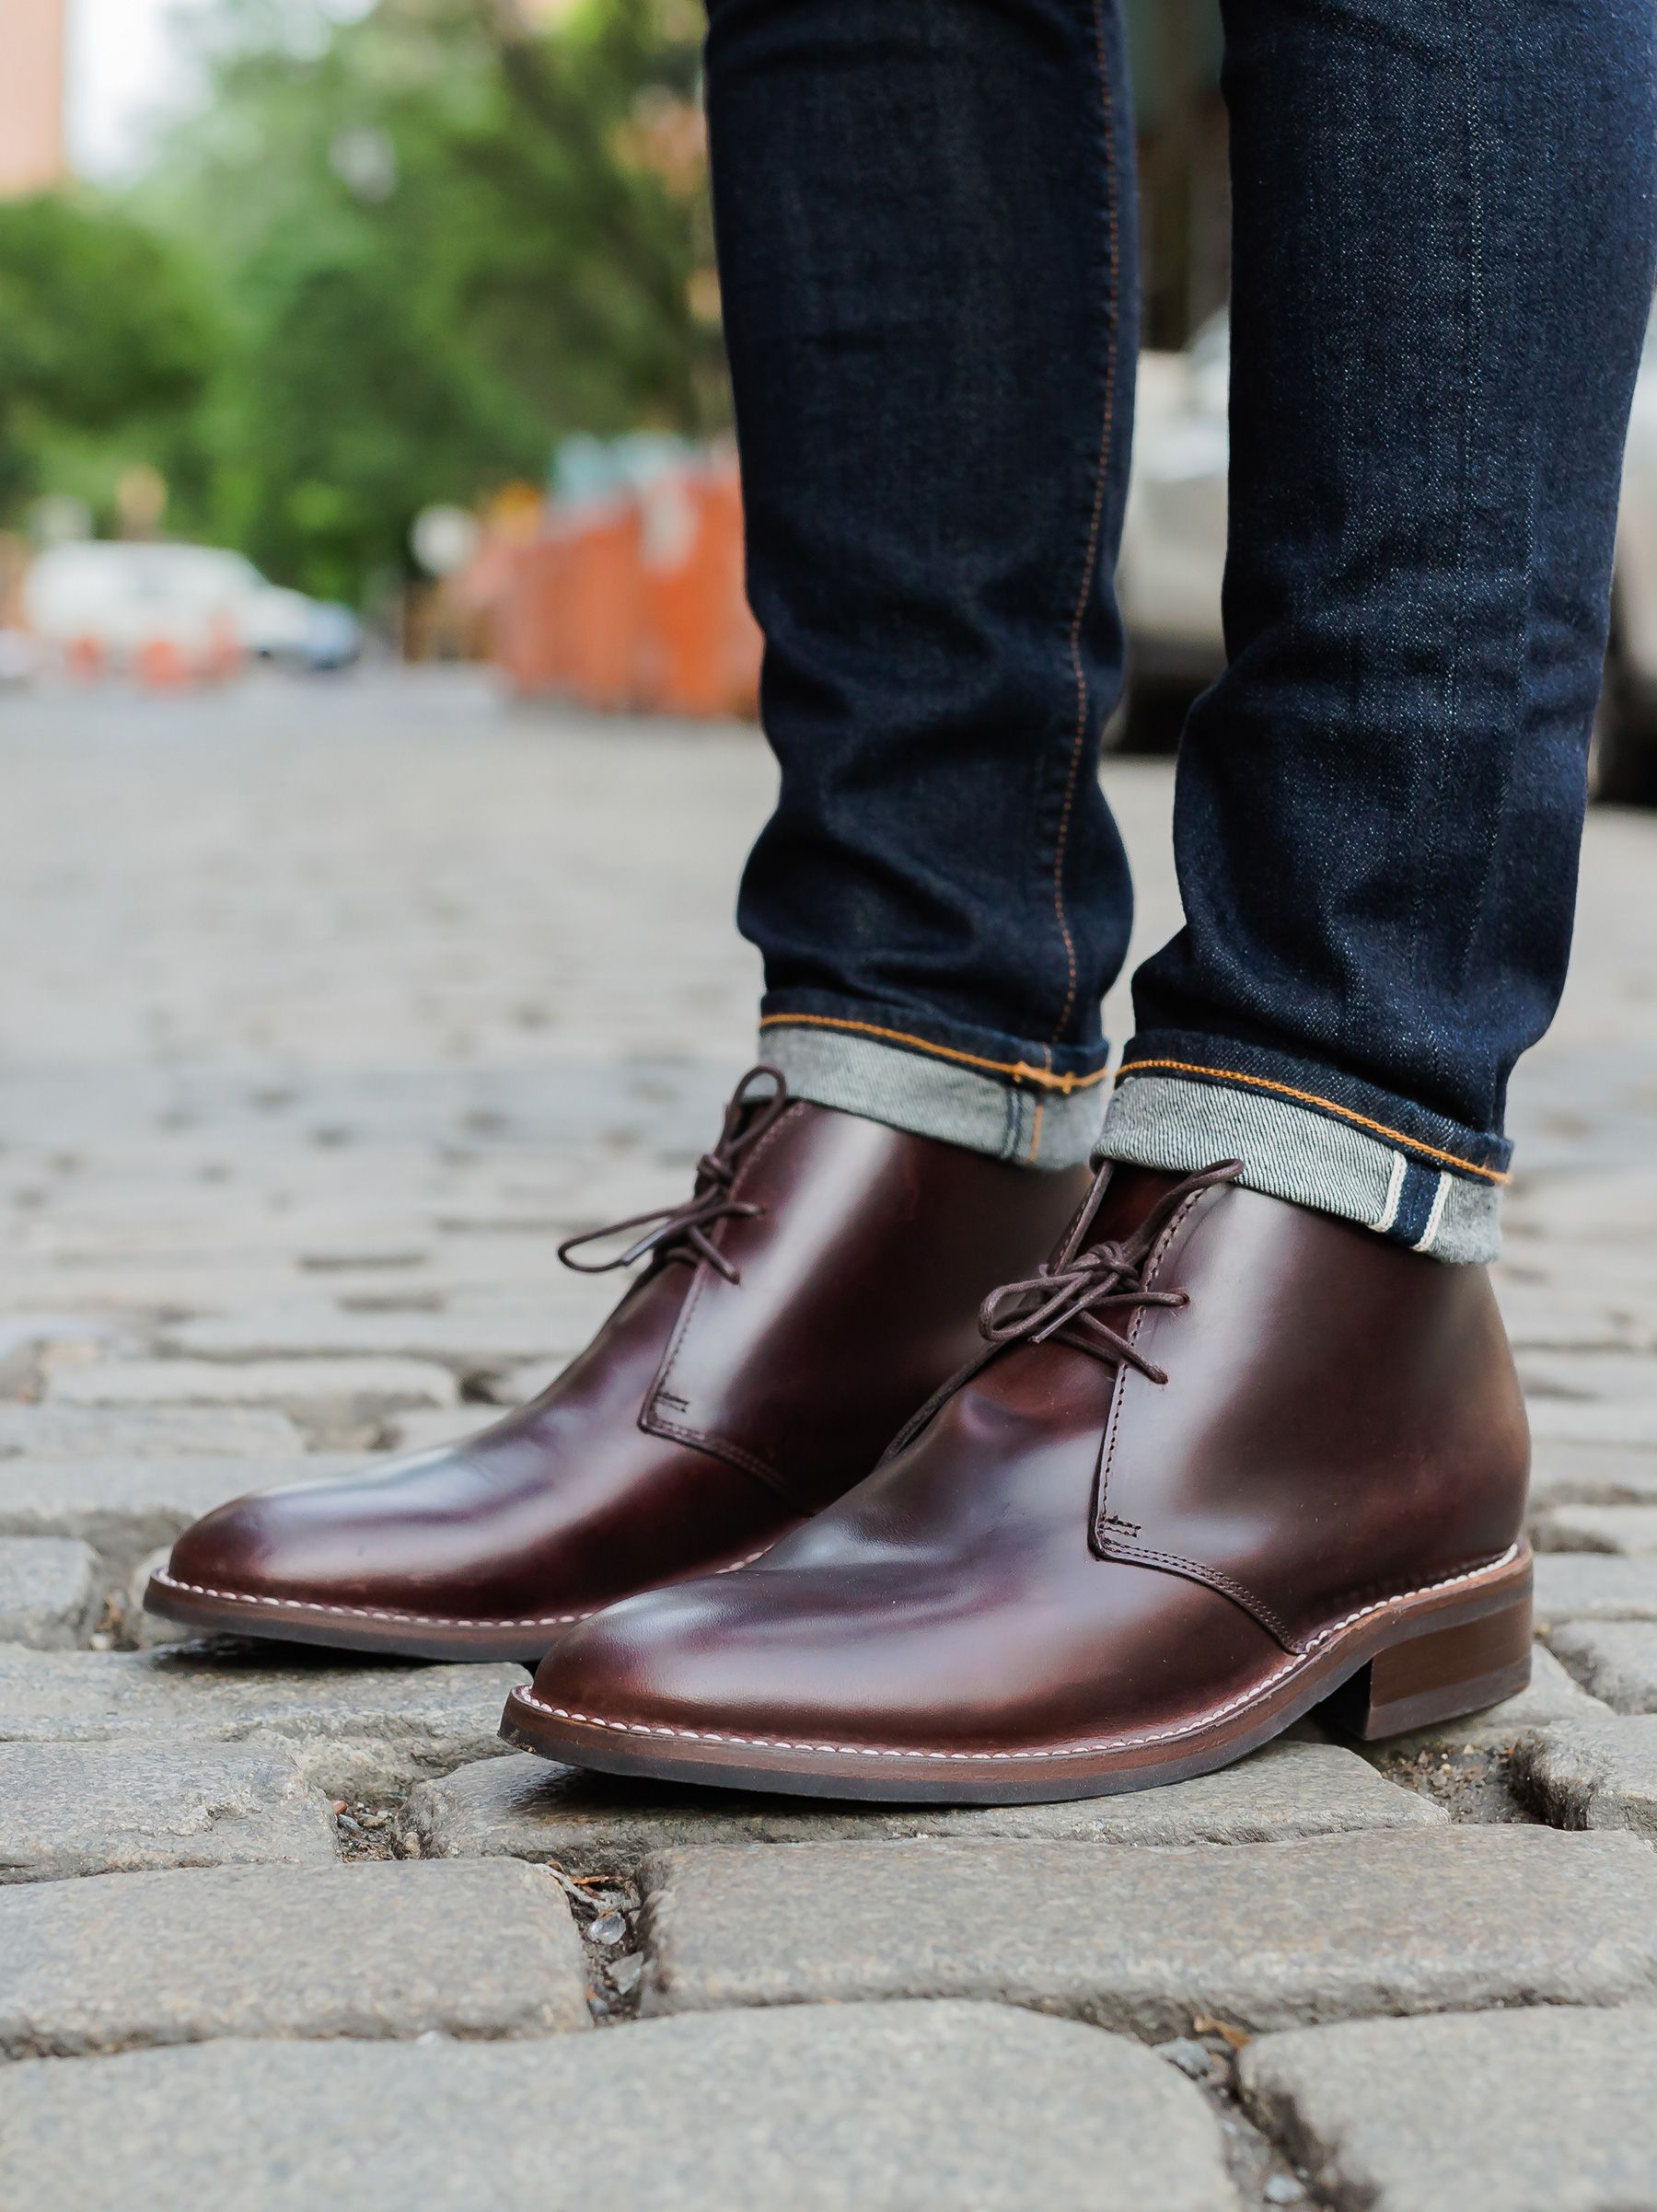 eee8ceb7d54a The chukka for a new generation. Blending classic British style with our  own American aesthetic to be more durable and versatile.